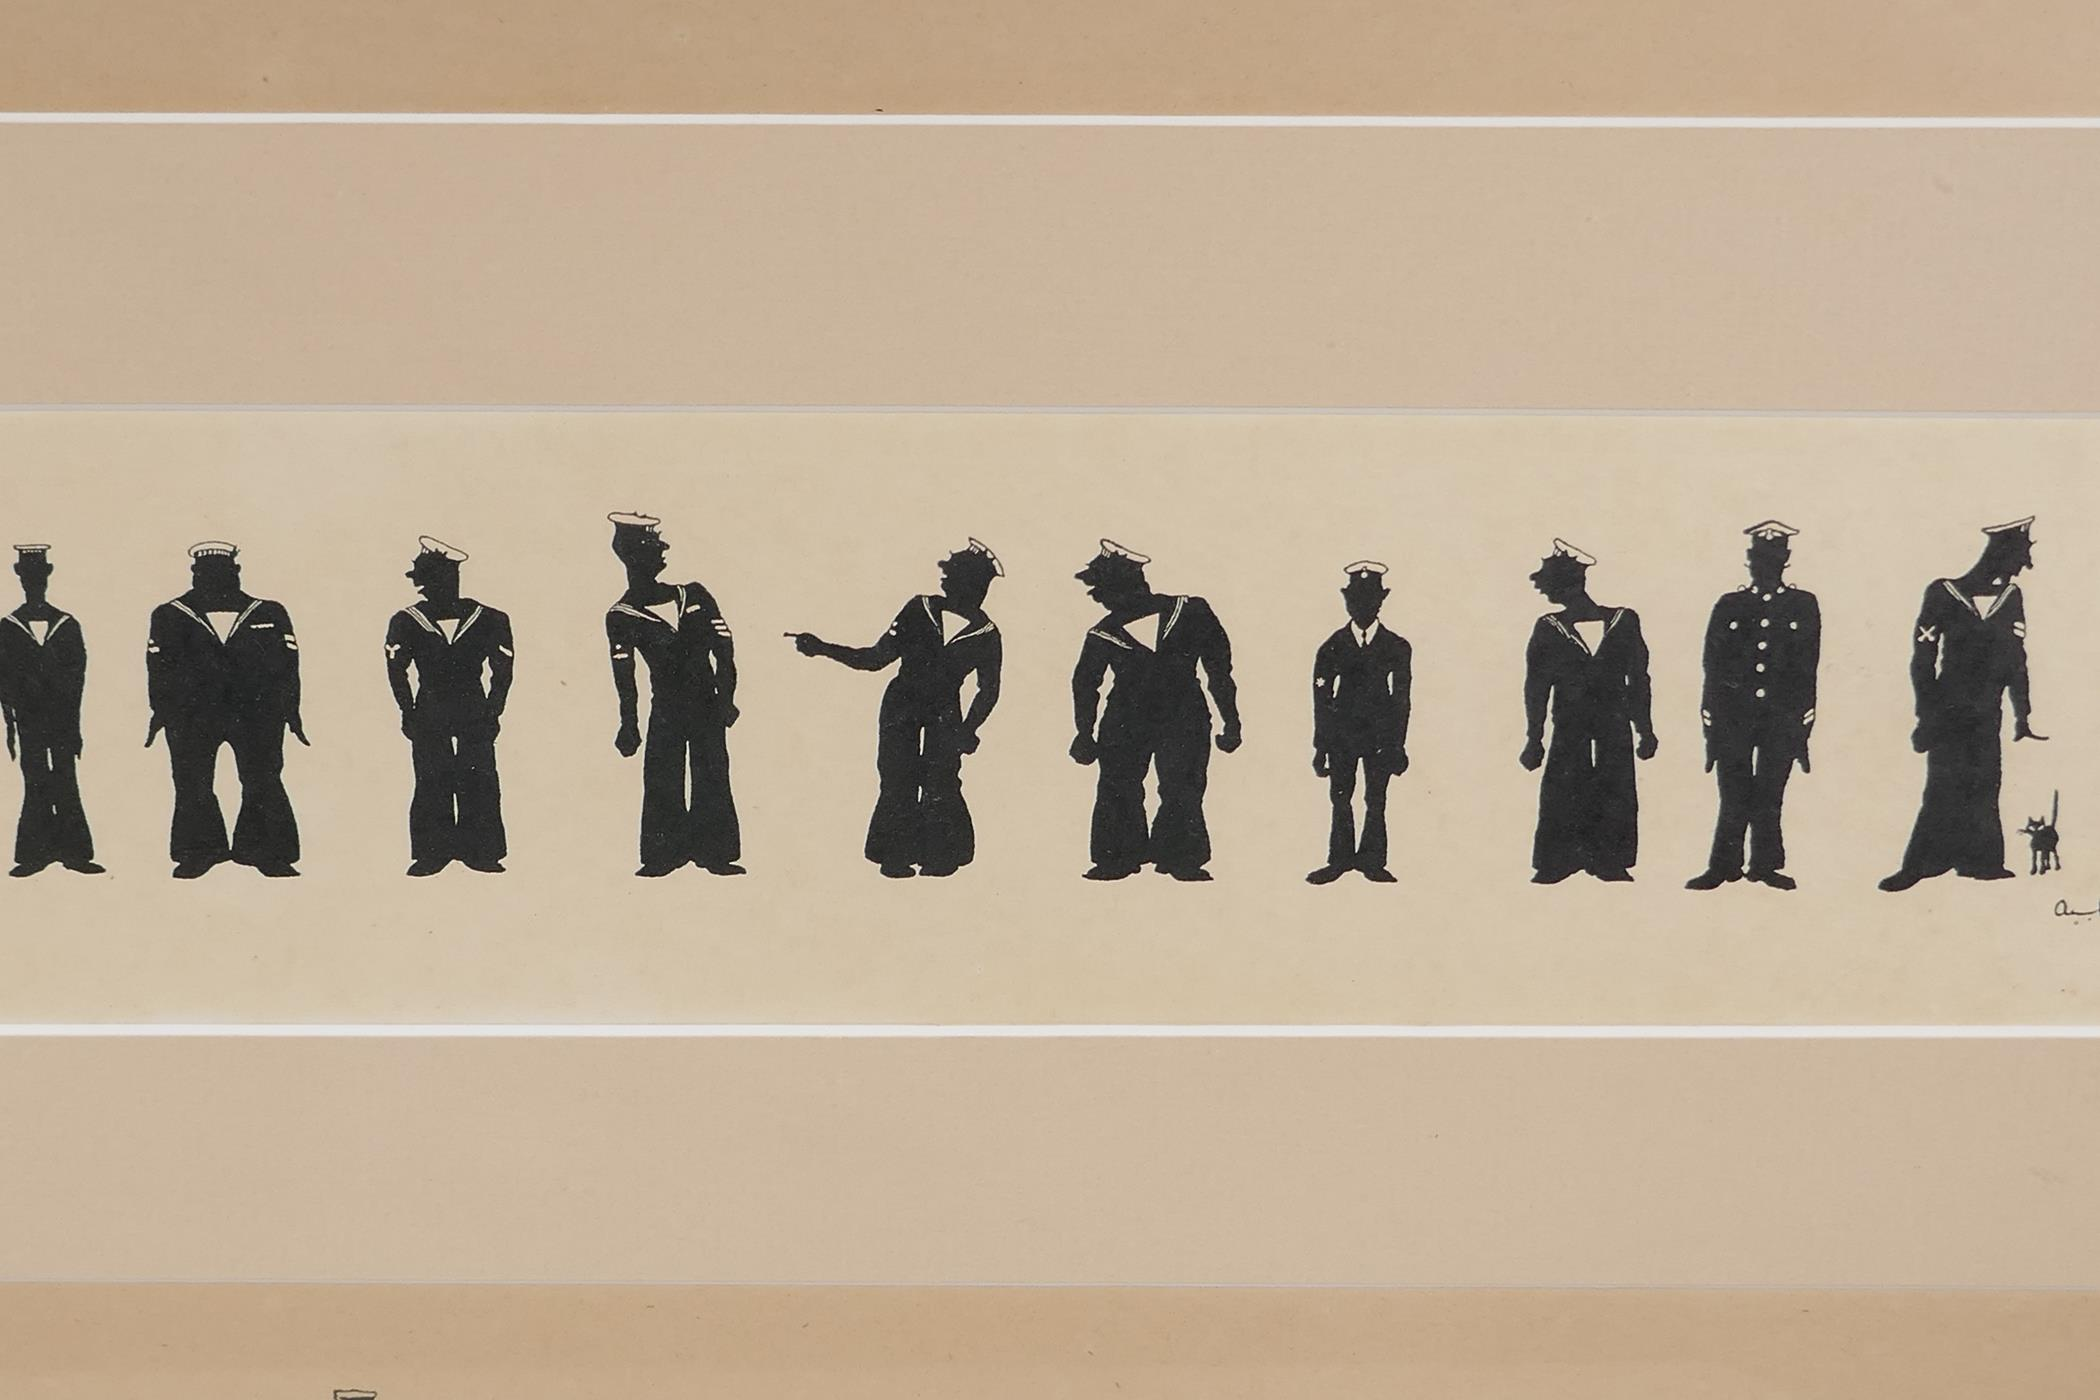 A.M. Hughes, three silhouette prints of naval life, Grog, Defaulters and Sunday Rounds, mounted in a - Image 6 of 9